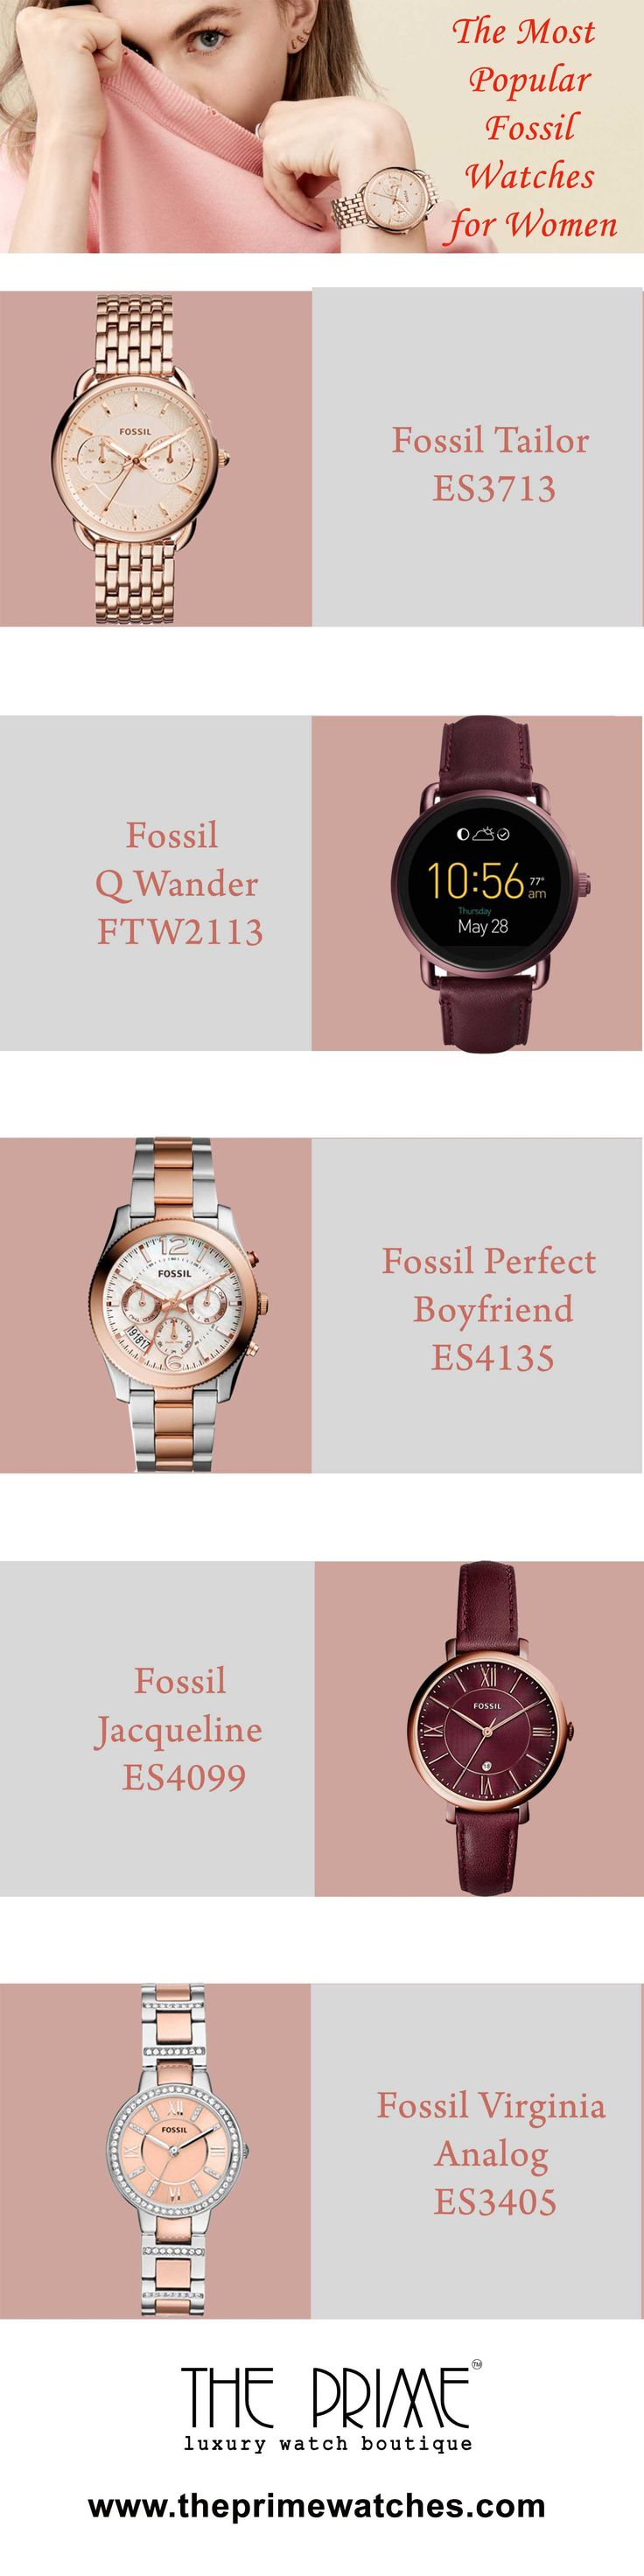 Women are glamorous and delicate, so they wear watches that complement their style and temperaments. Fossil is a brand that makes watches both for men and women. Their women's watches can easily tempt the ladies with their lucrative appearances.  Fossil, one of the fashion watch making brand keeps in mind the demand of a wearer so that they can fulfil their needs. Here you will get to see some Fossil watches for that has become widely popular.